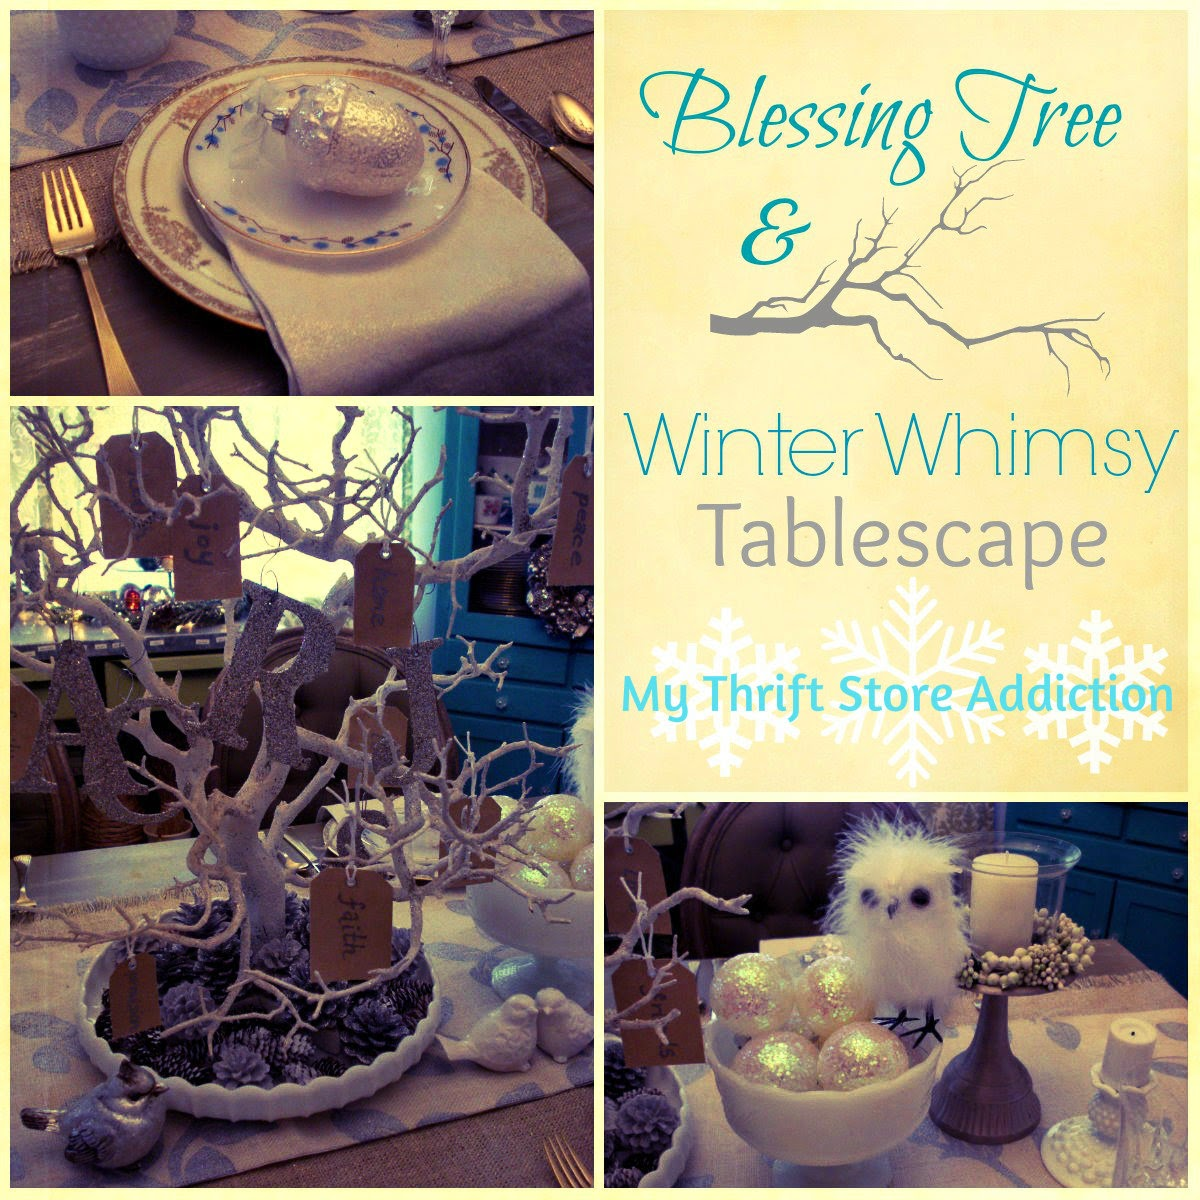 Winter Whimsy tablescape